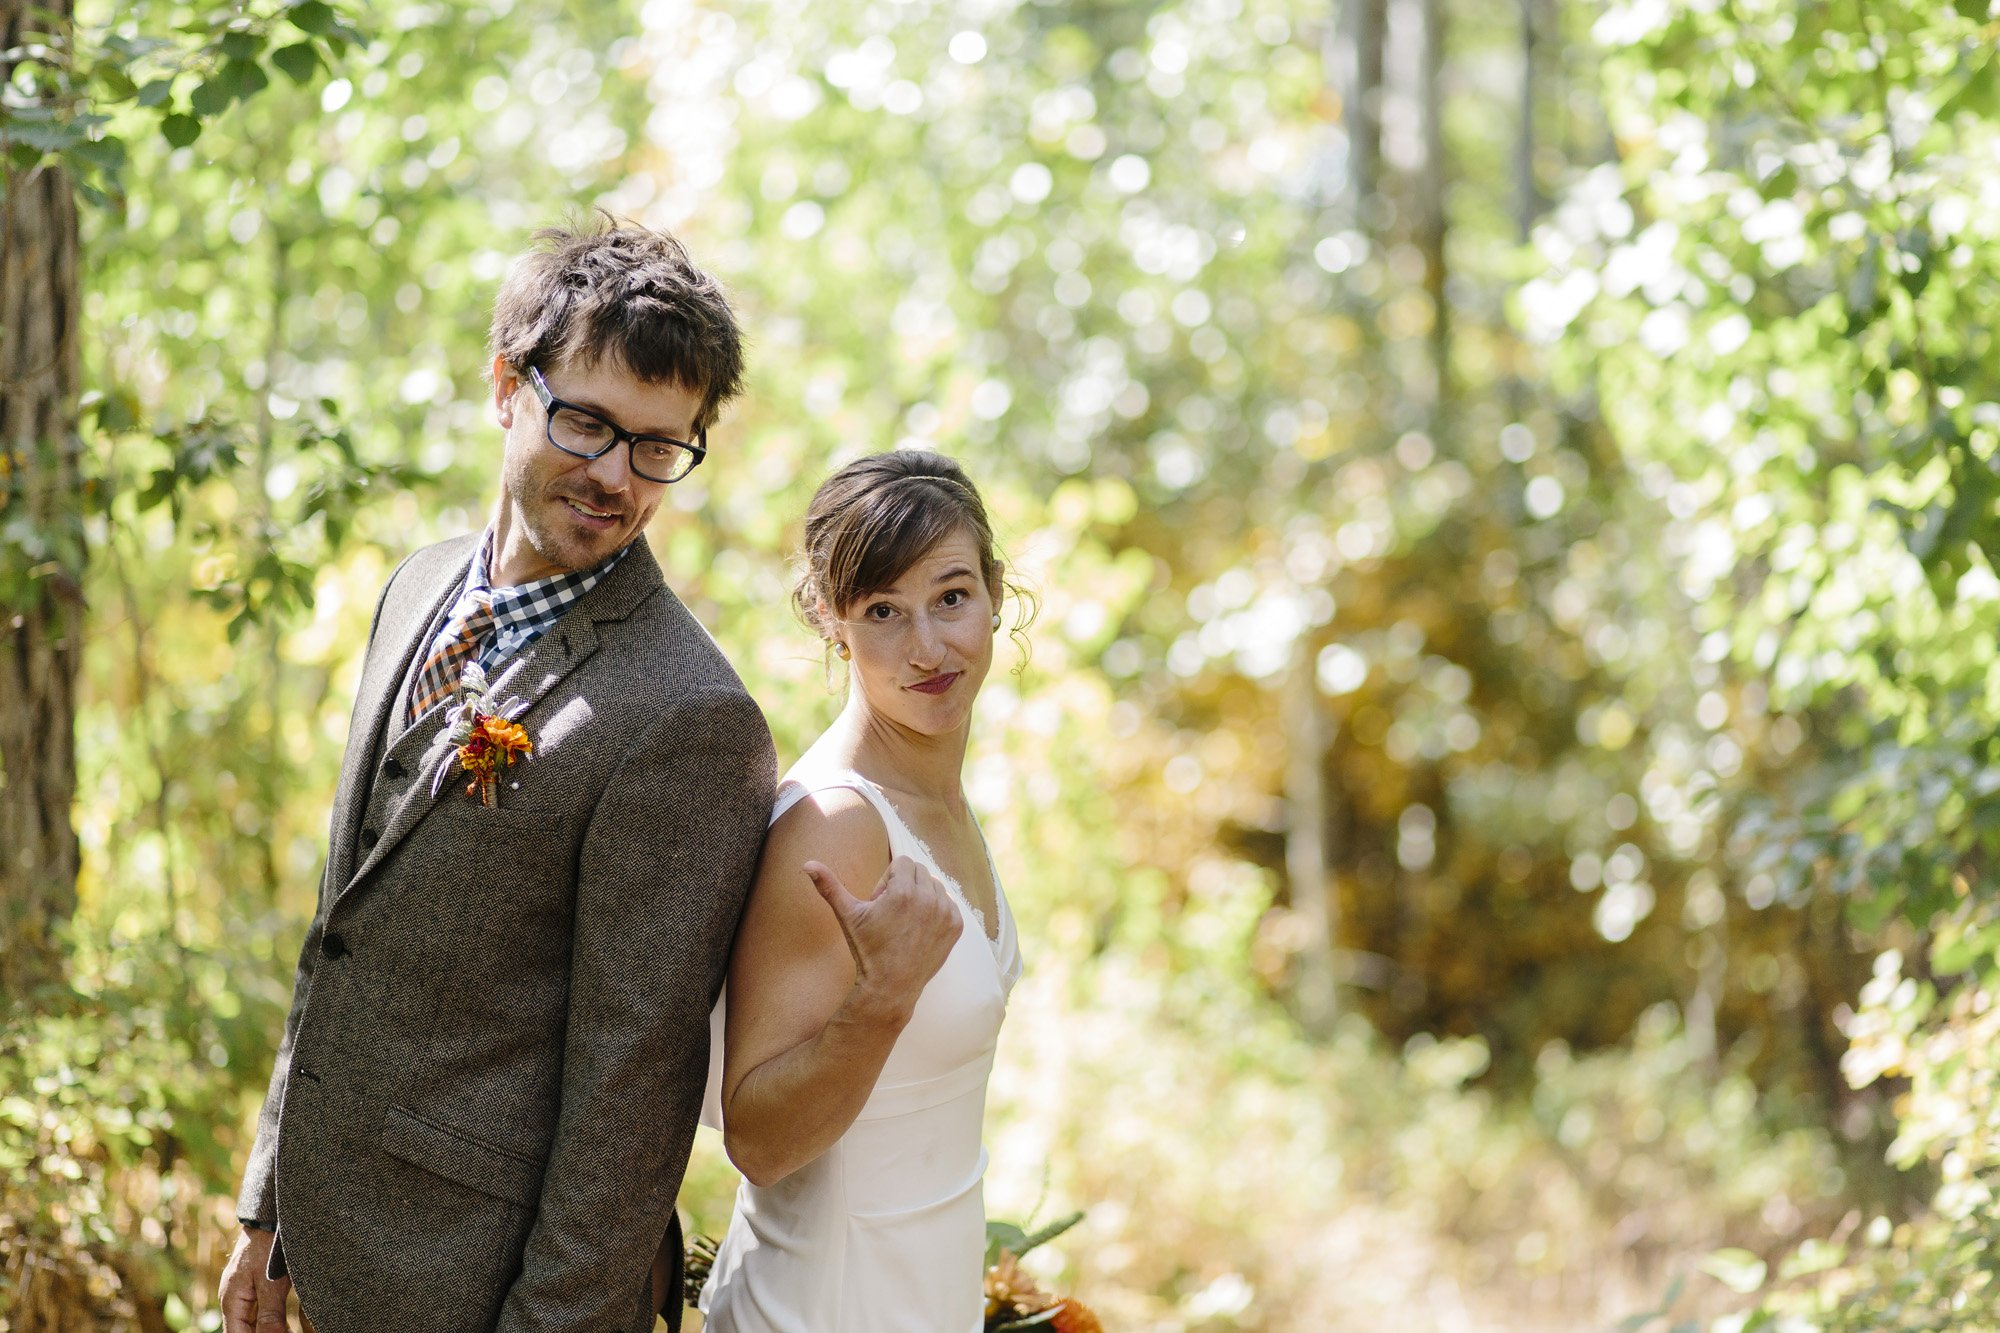 Wedding Portraits with Personality